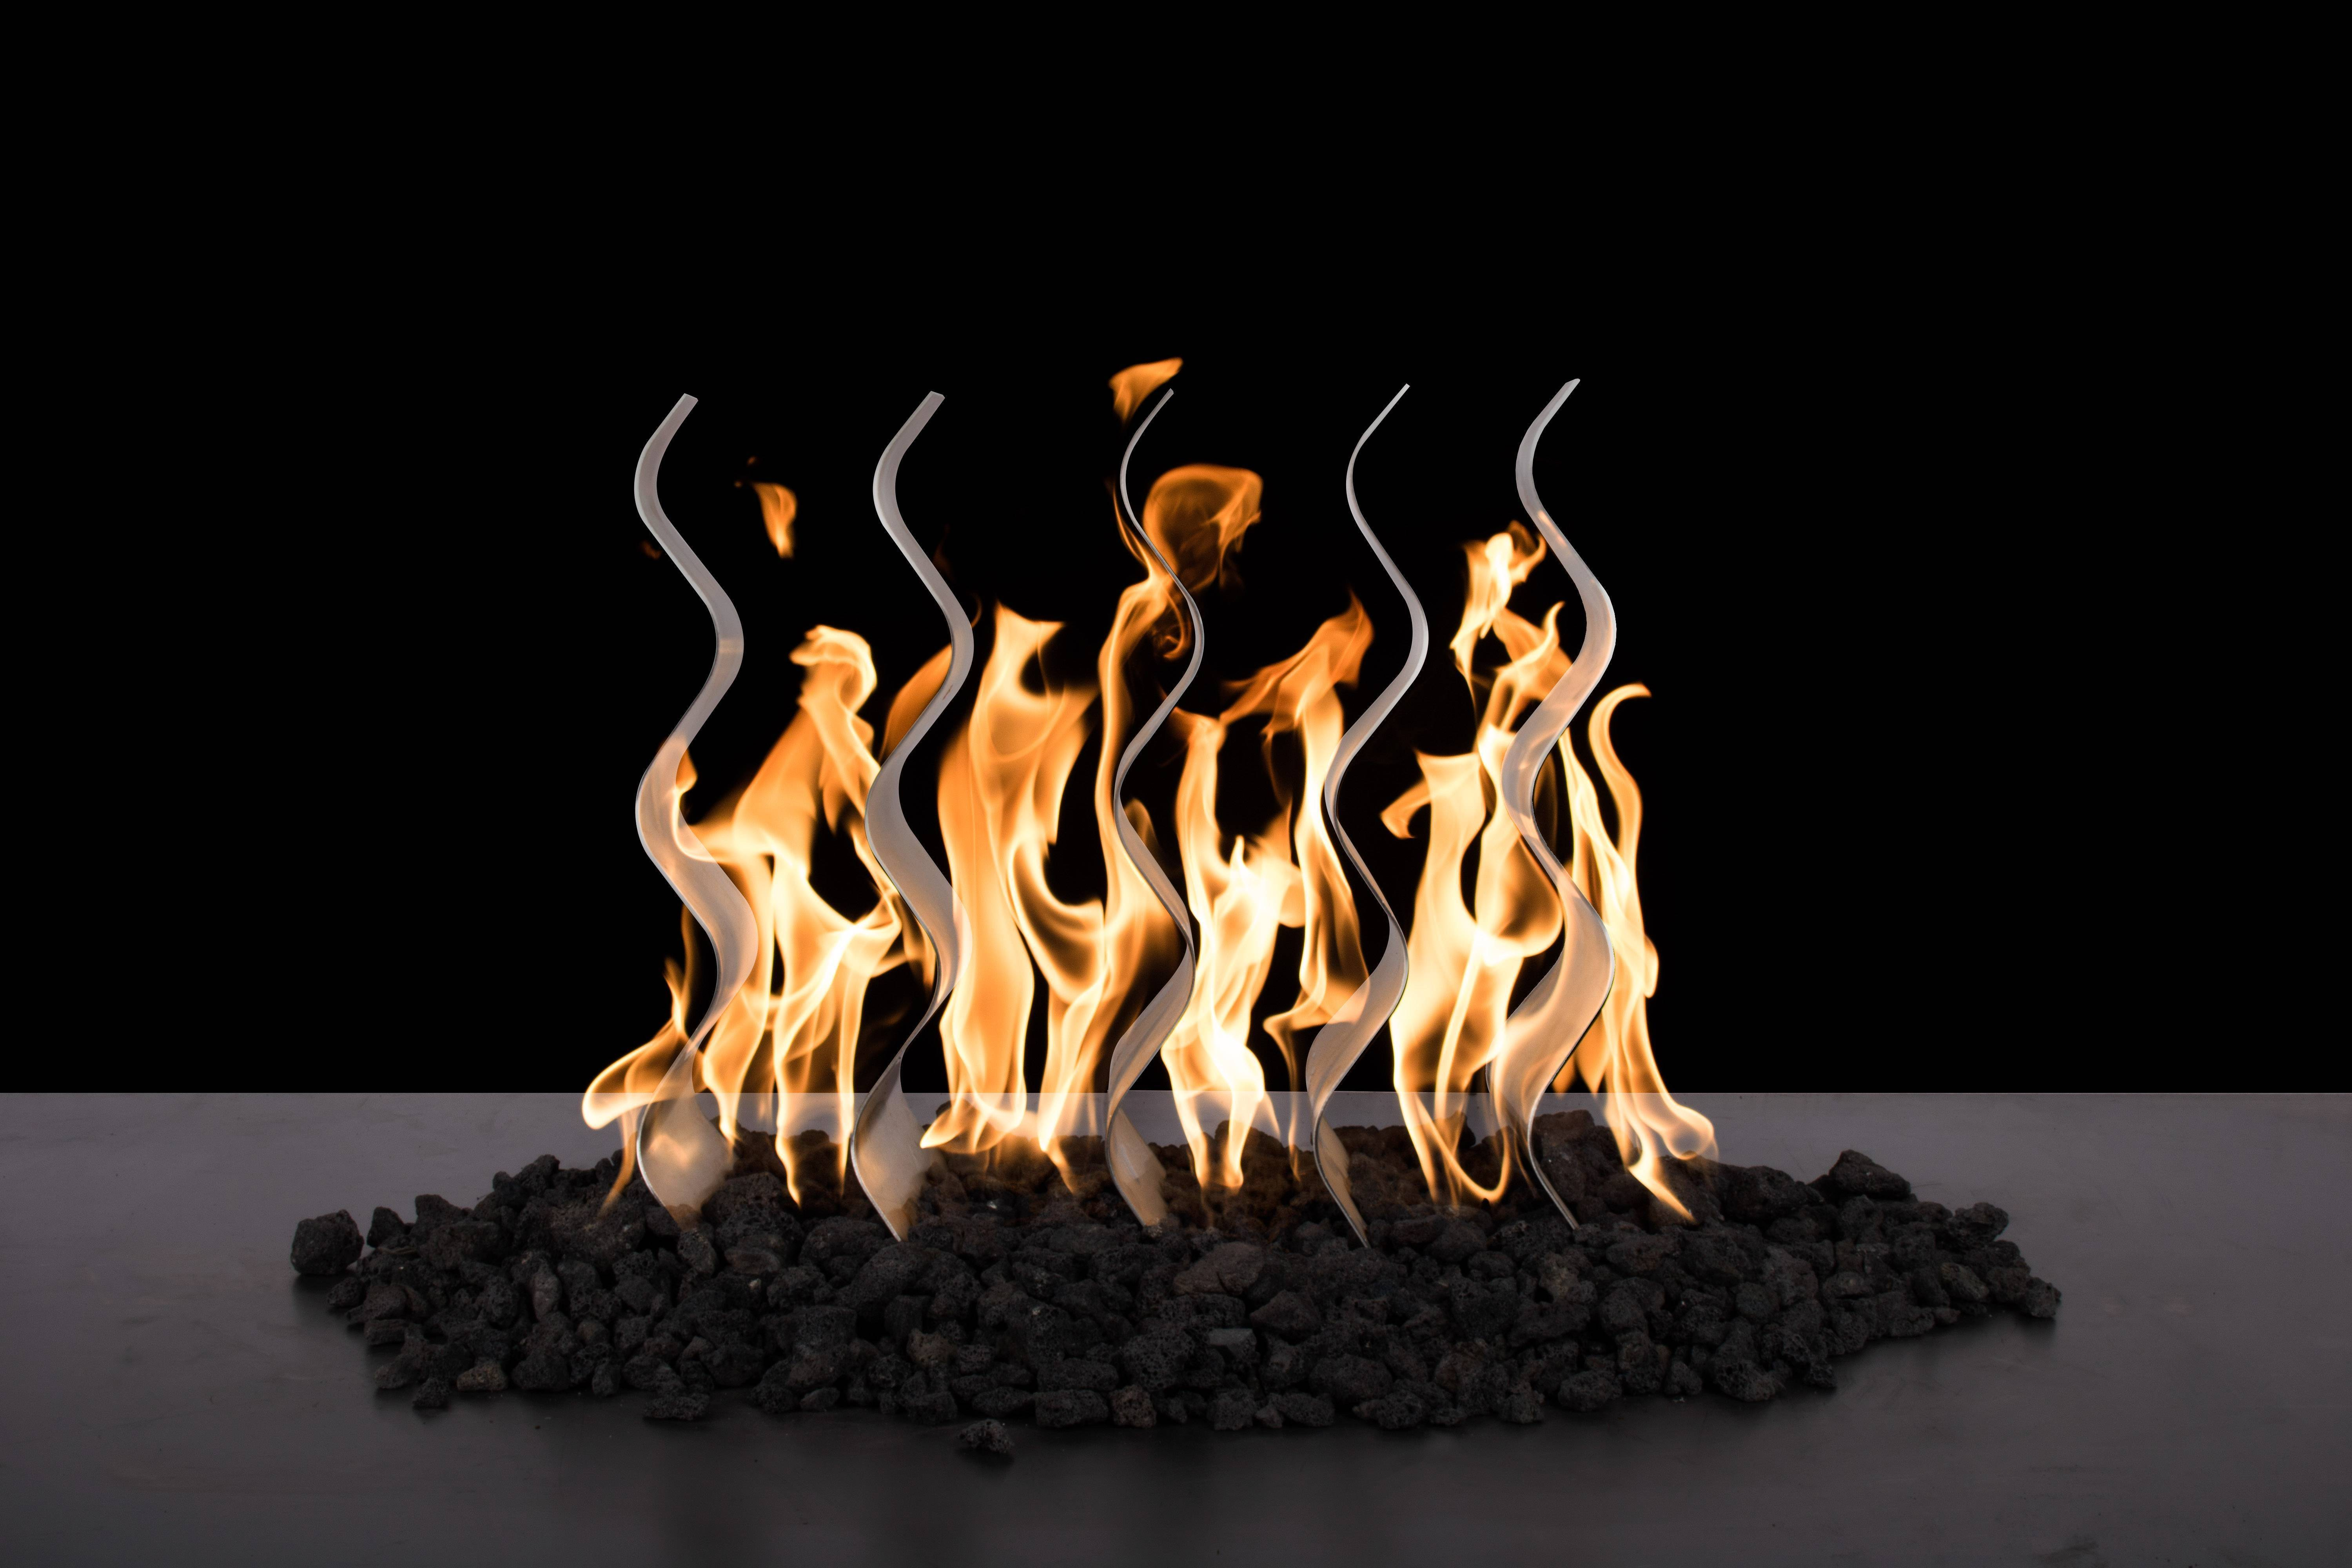 Stainless Steel Fire Waves - Includes Burner | Starting at $1,075